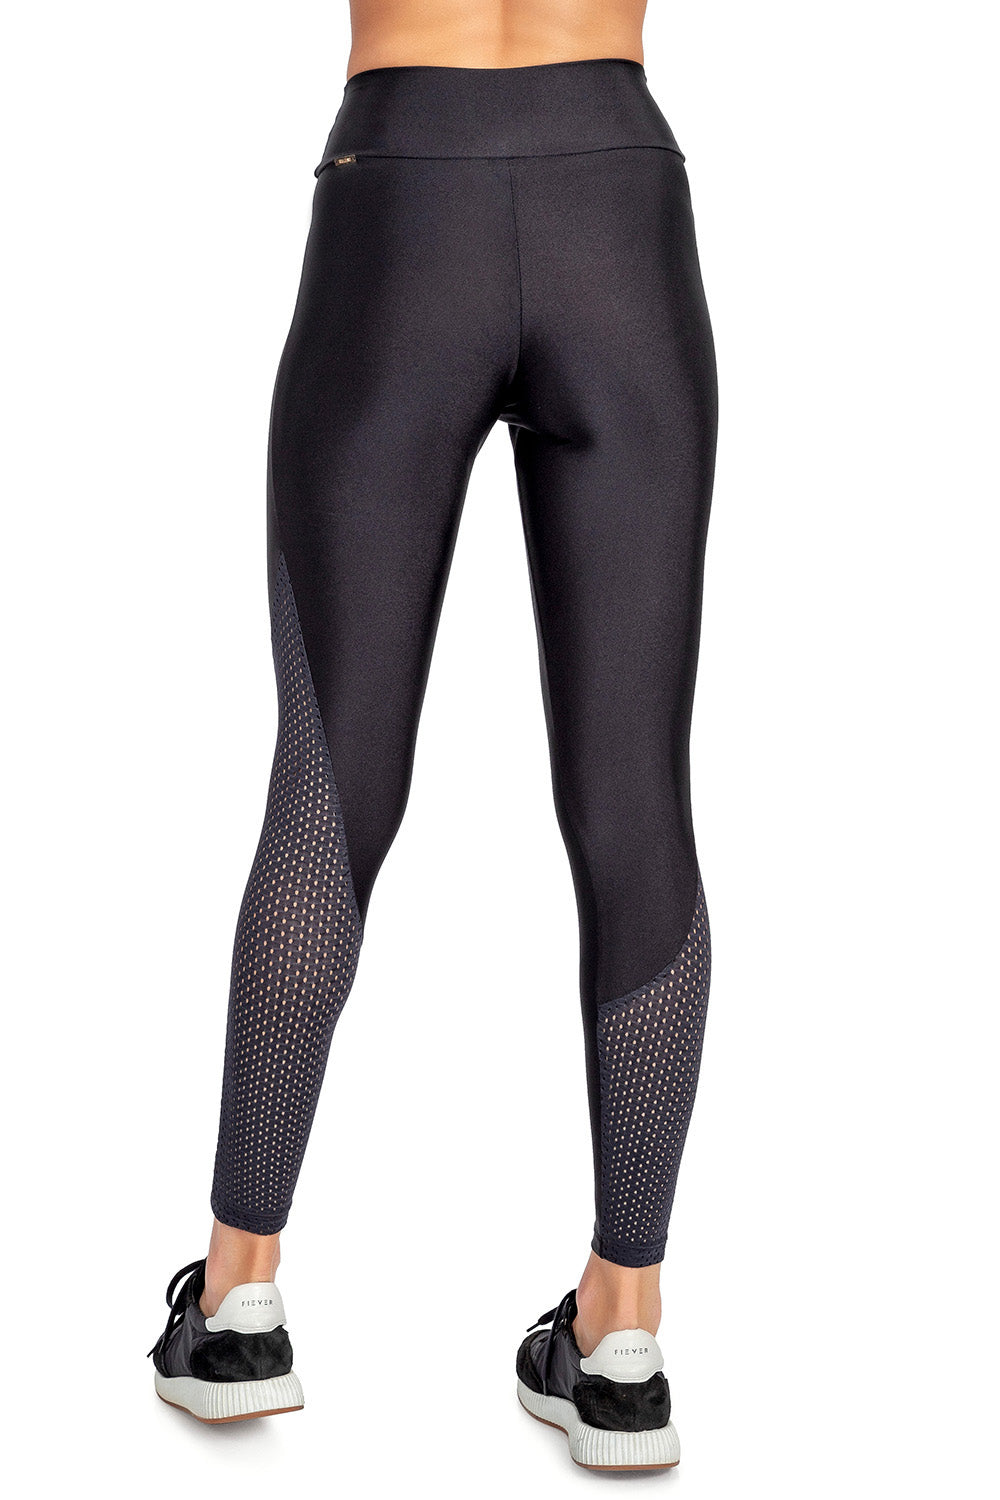 Bella Motion Legging